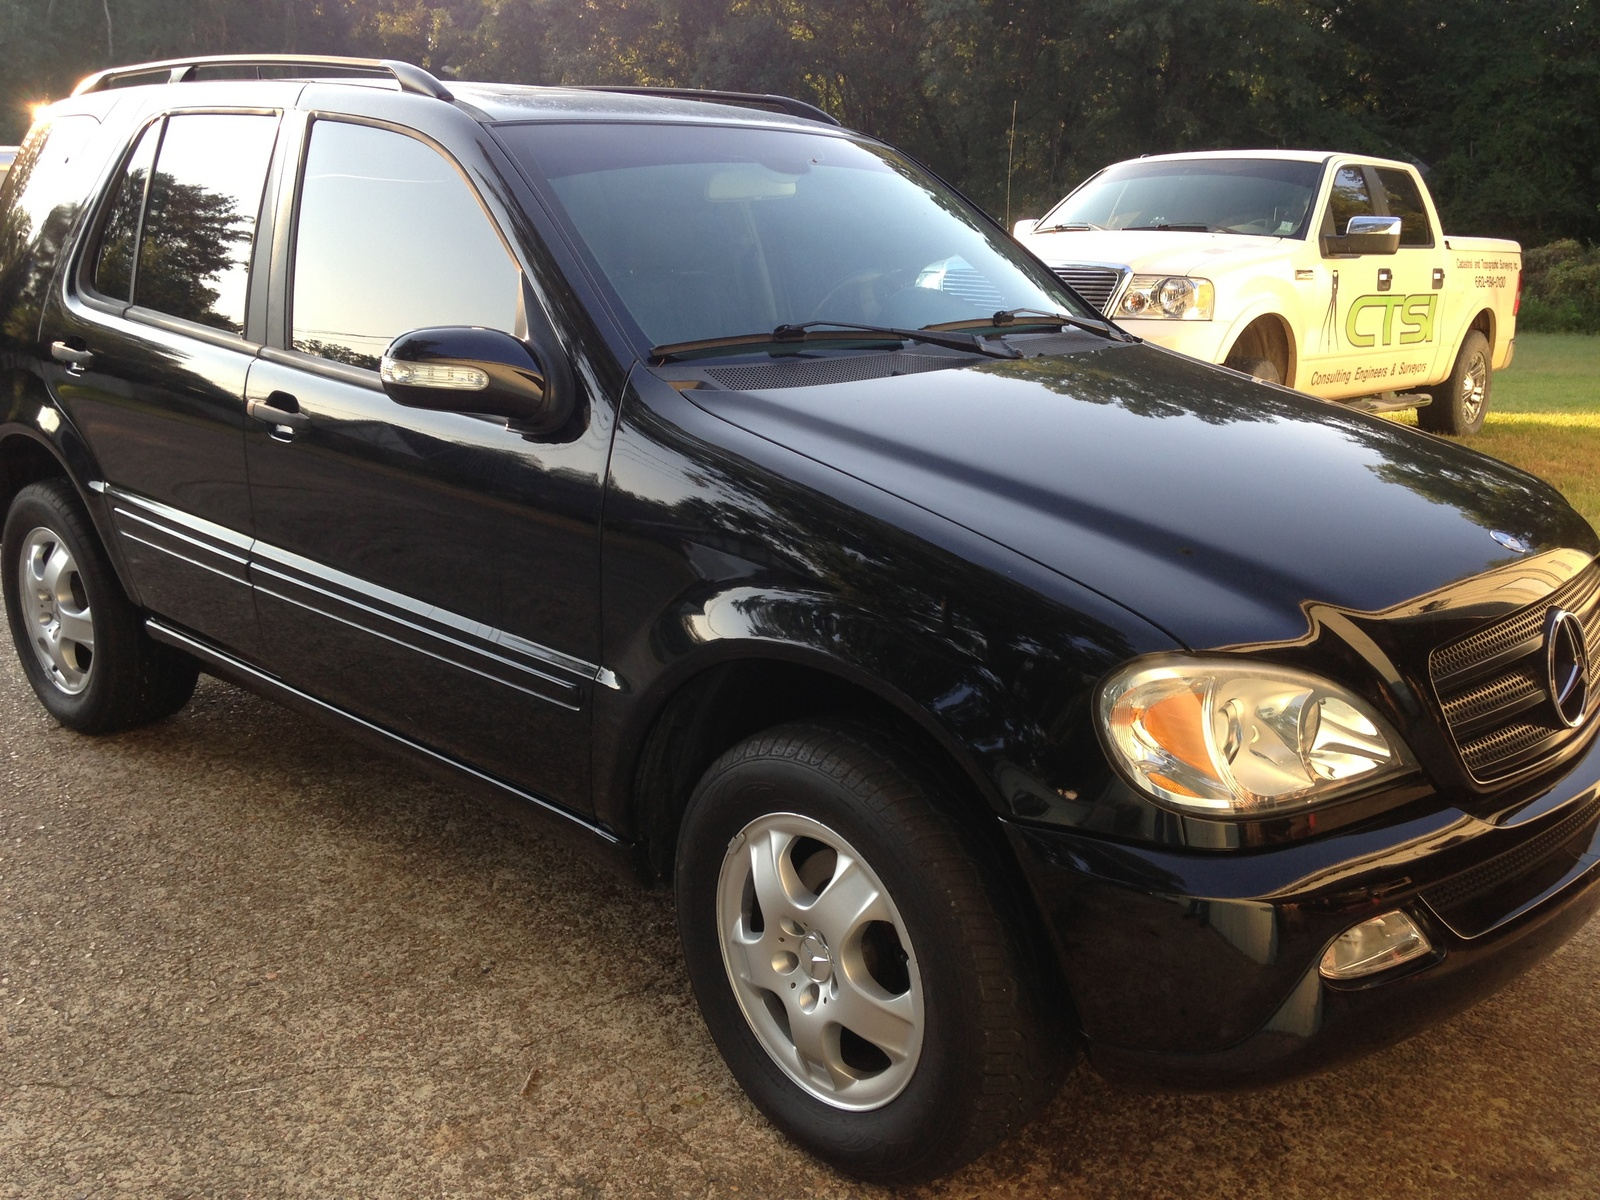 2005 mercedes benz m class pictures cargurus for 2006 mercedes benz ml350 price